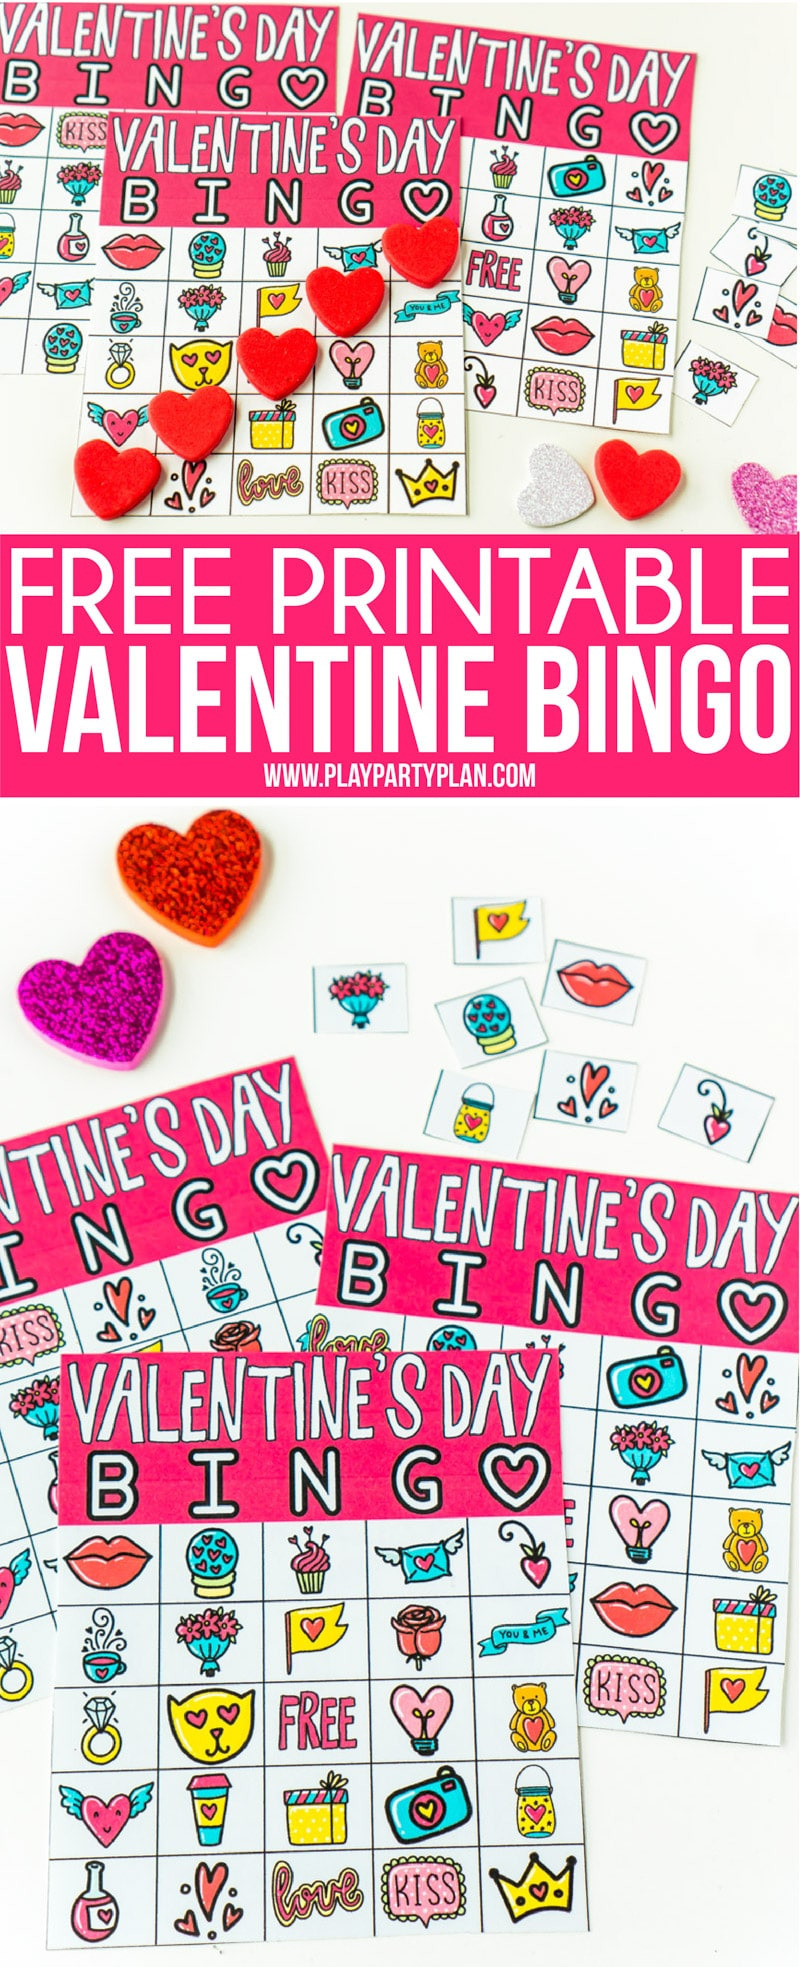 image about Printable Valentine Bingo Cards titled Cost-free Printable Valentine Bingo Playing cards for All Ages - Perform